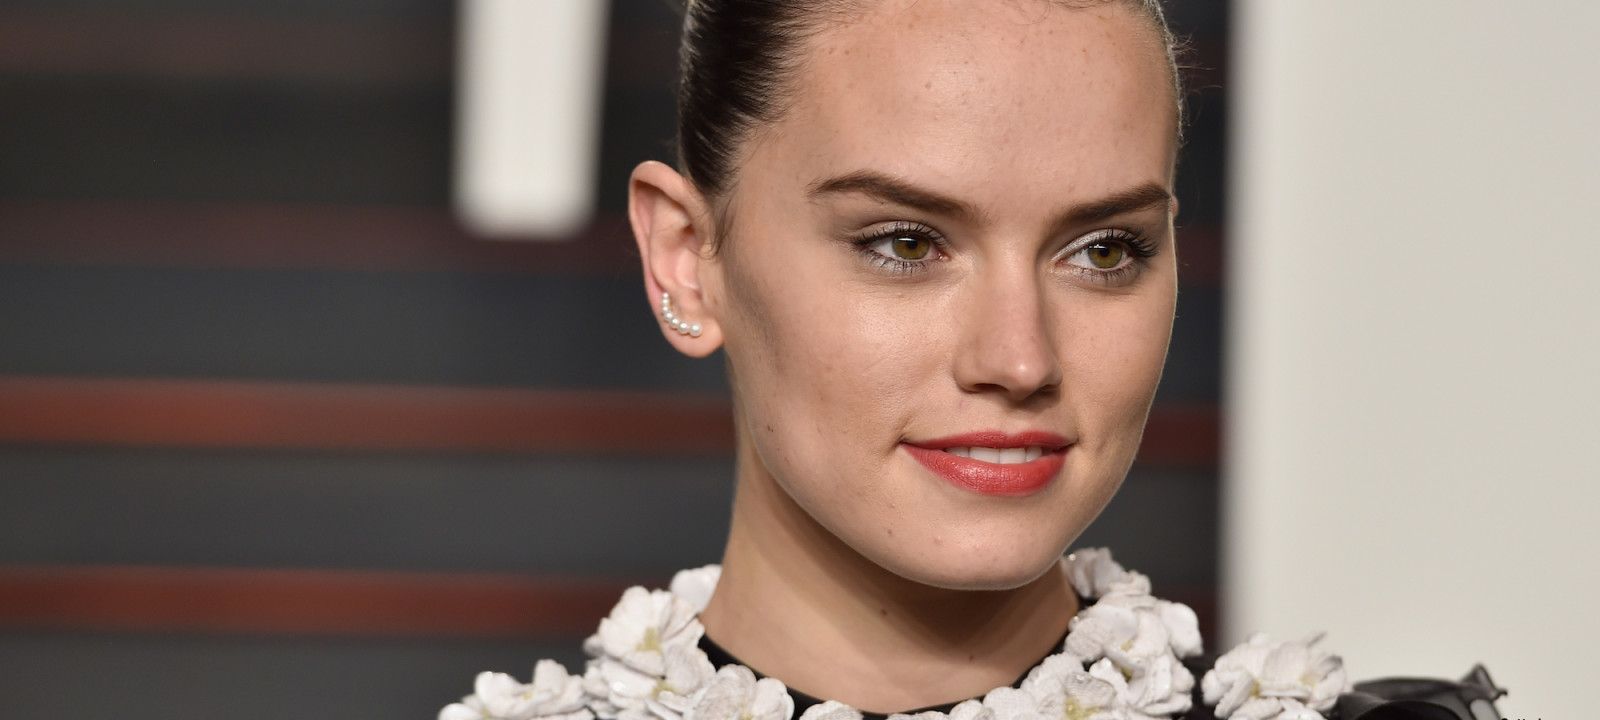 Actress Daisy Ridley attends the 2016 Vanity Fair Oscar Party Hosted By Graydon Carter at the Wallis Annenberg Center for the Performing Arts on February 28, 2016 in Beverly Hills, California.